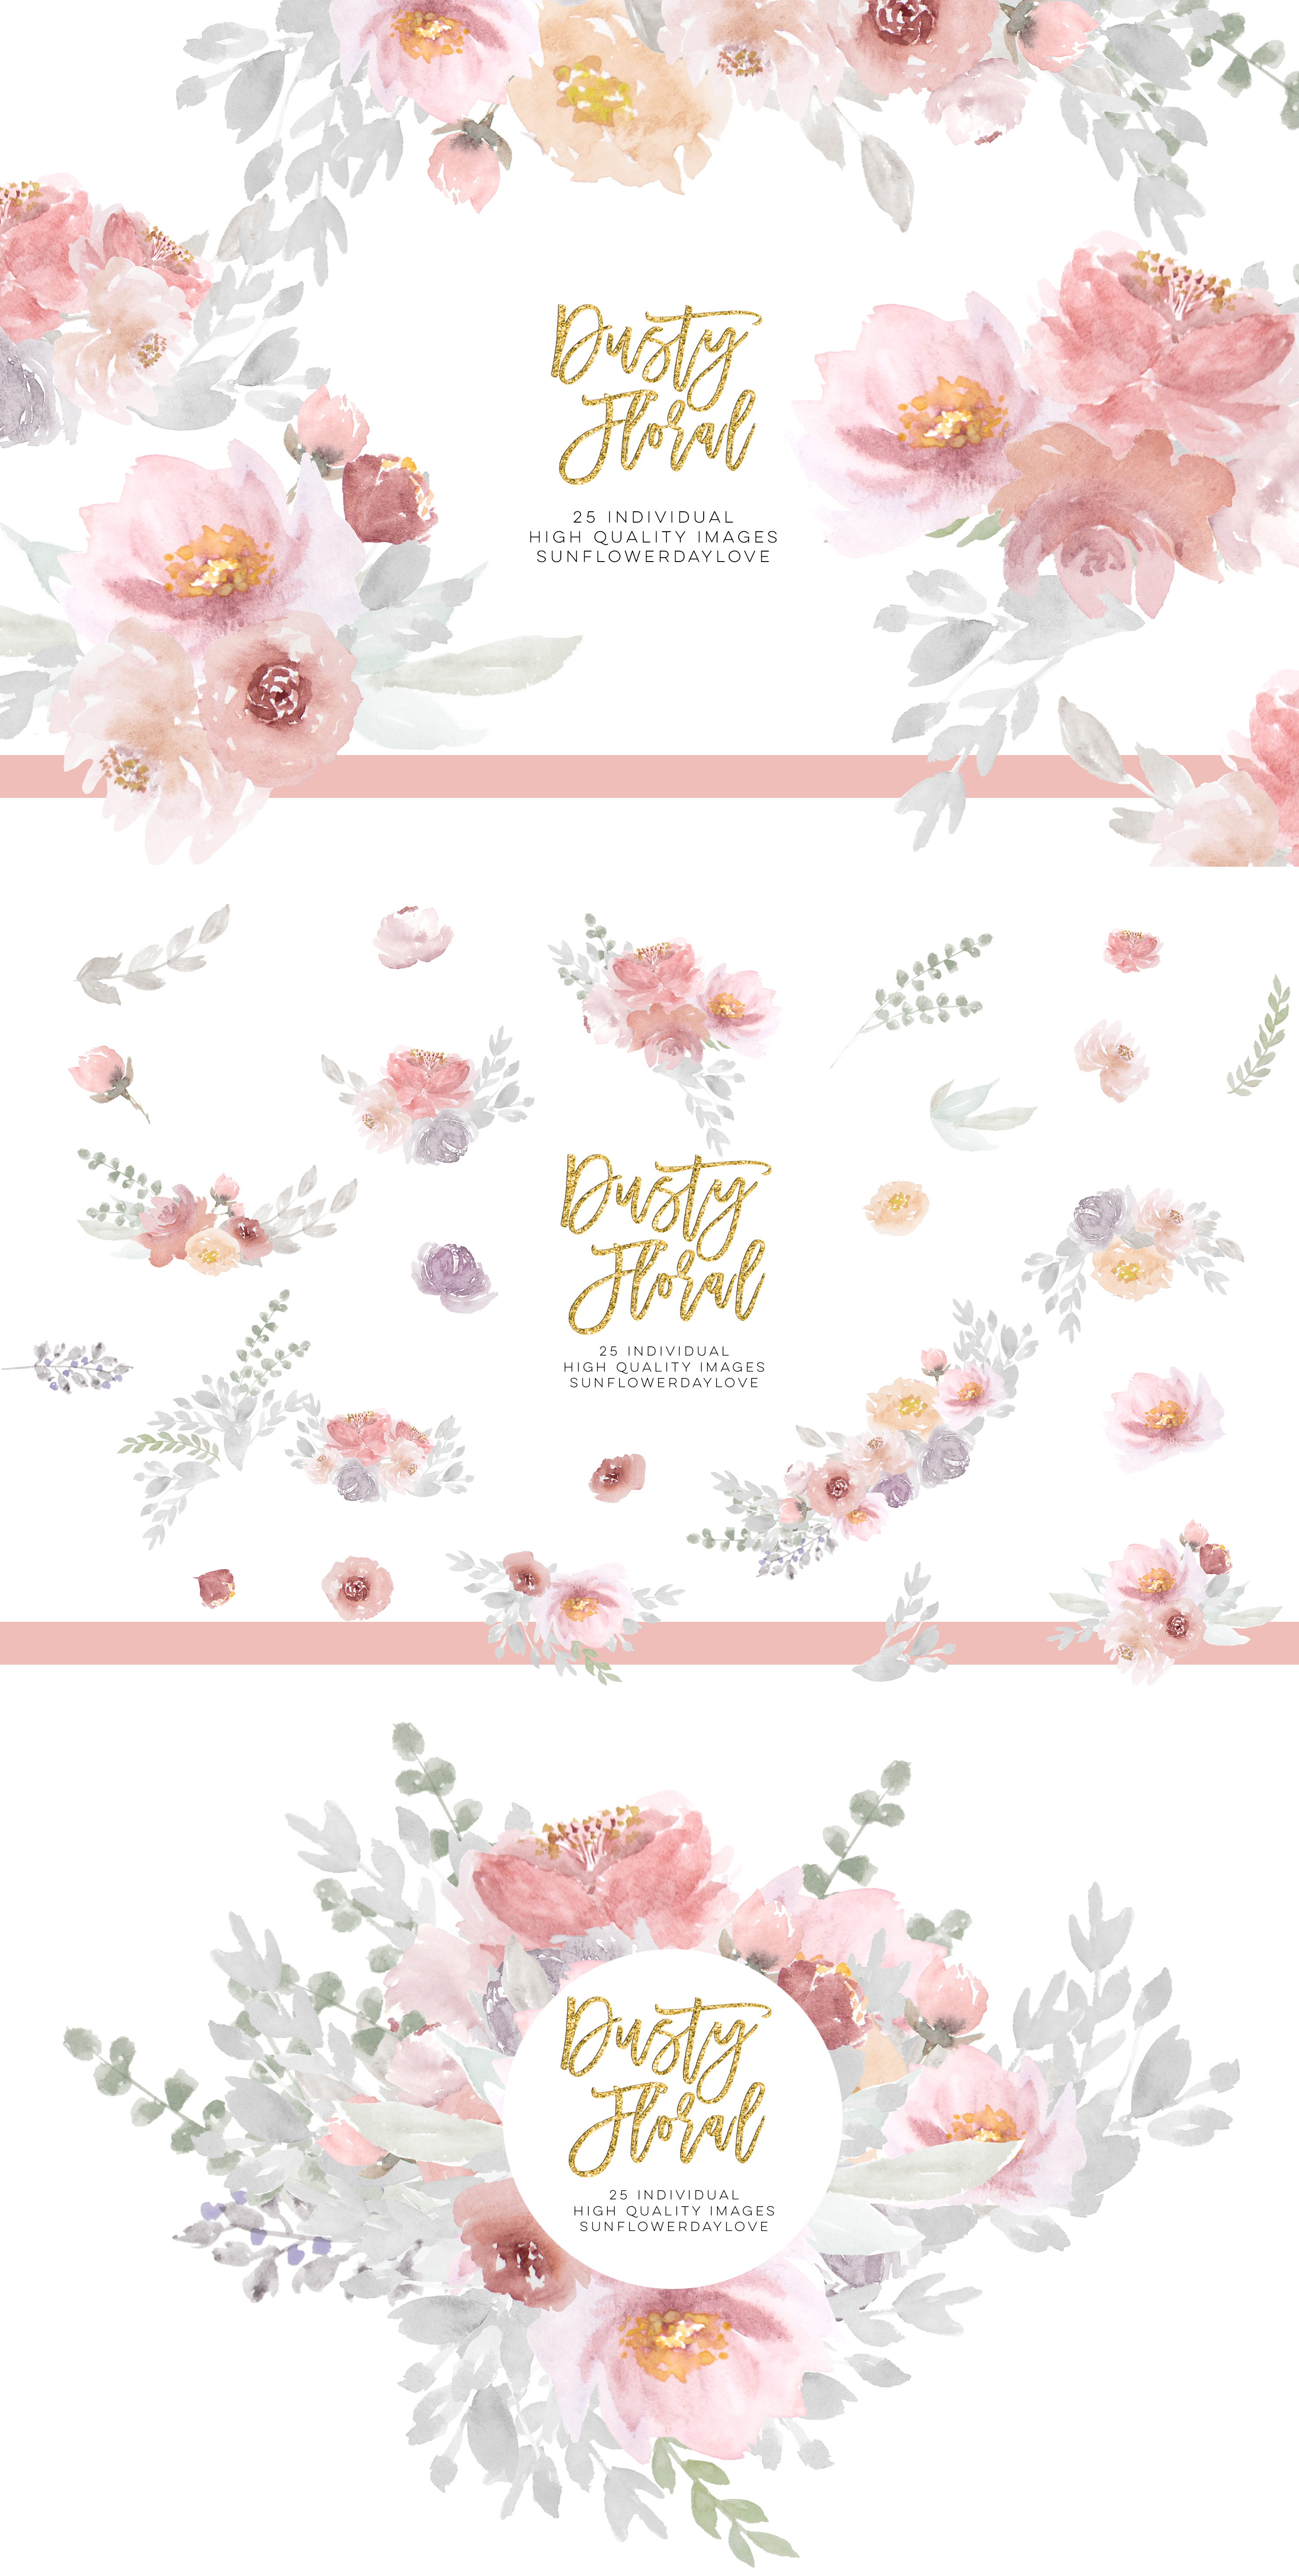 Dusty rose floral clipart, Wedding Invitation Clip Art example image 5